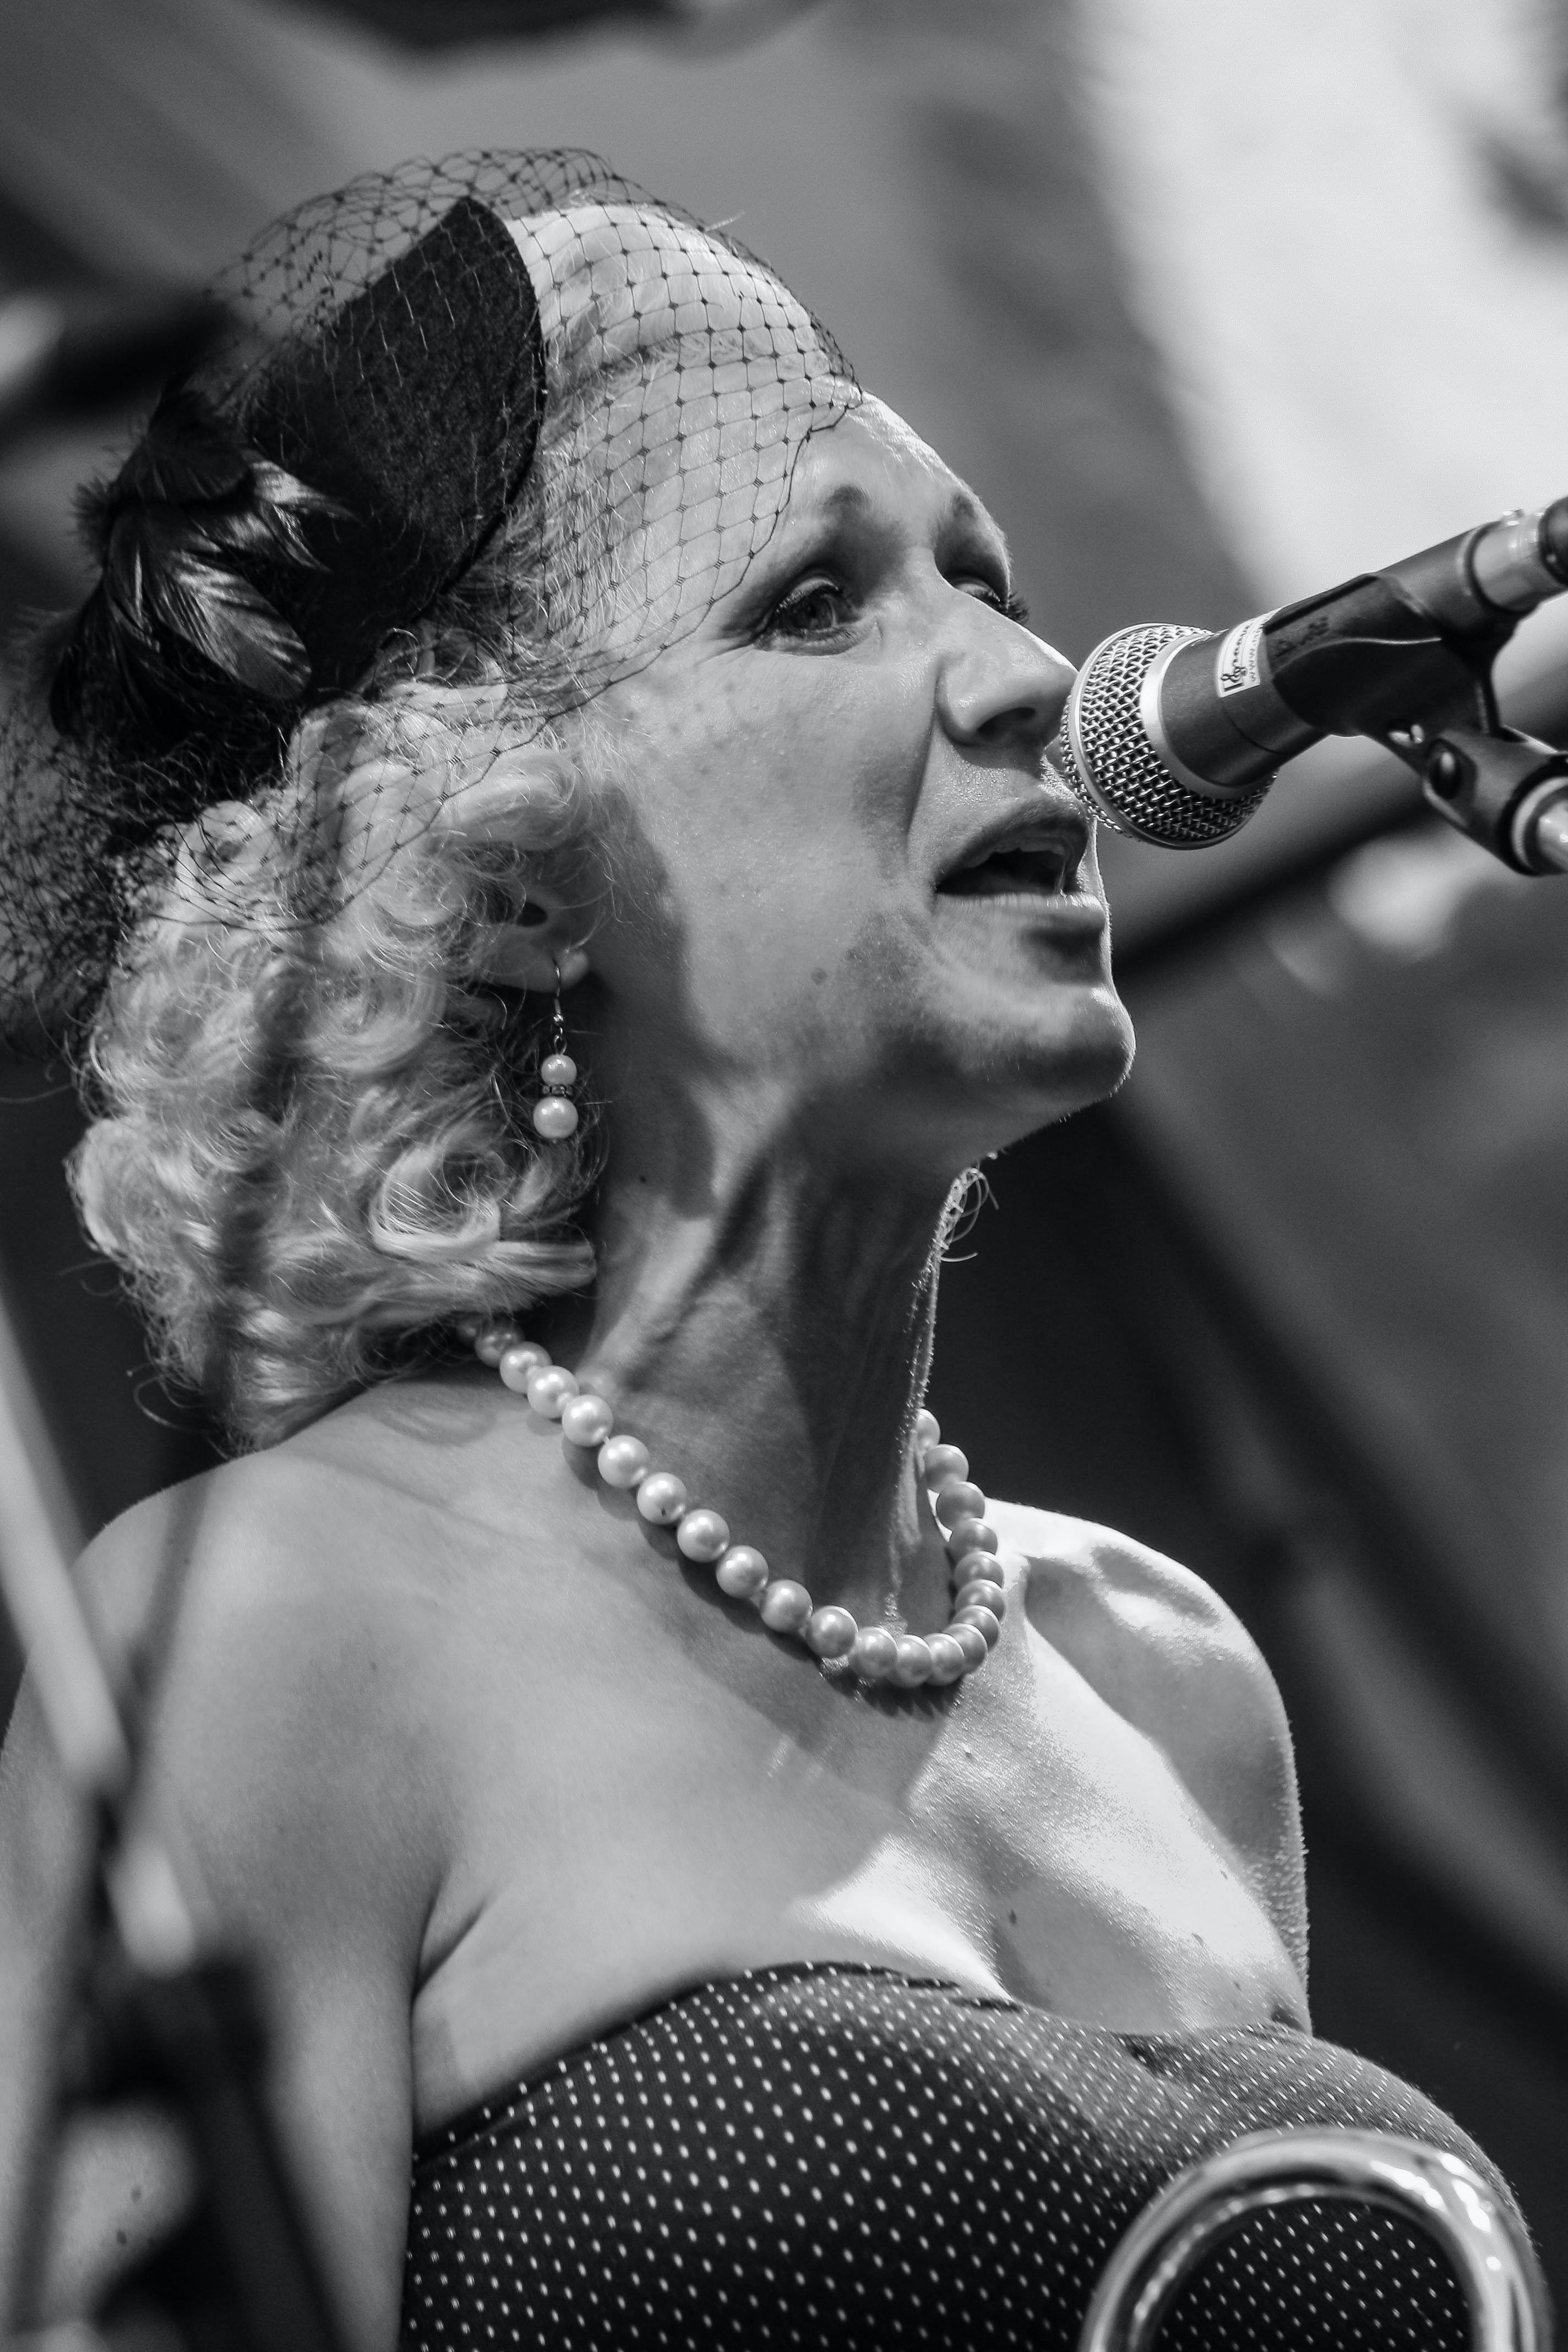 Monochrome Photo of Singing Woman